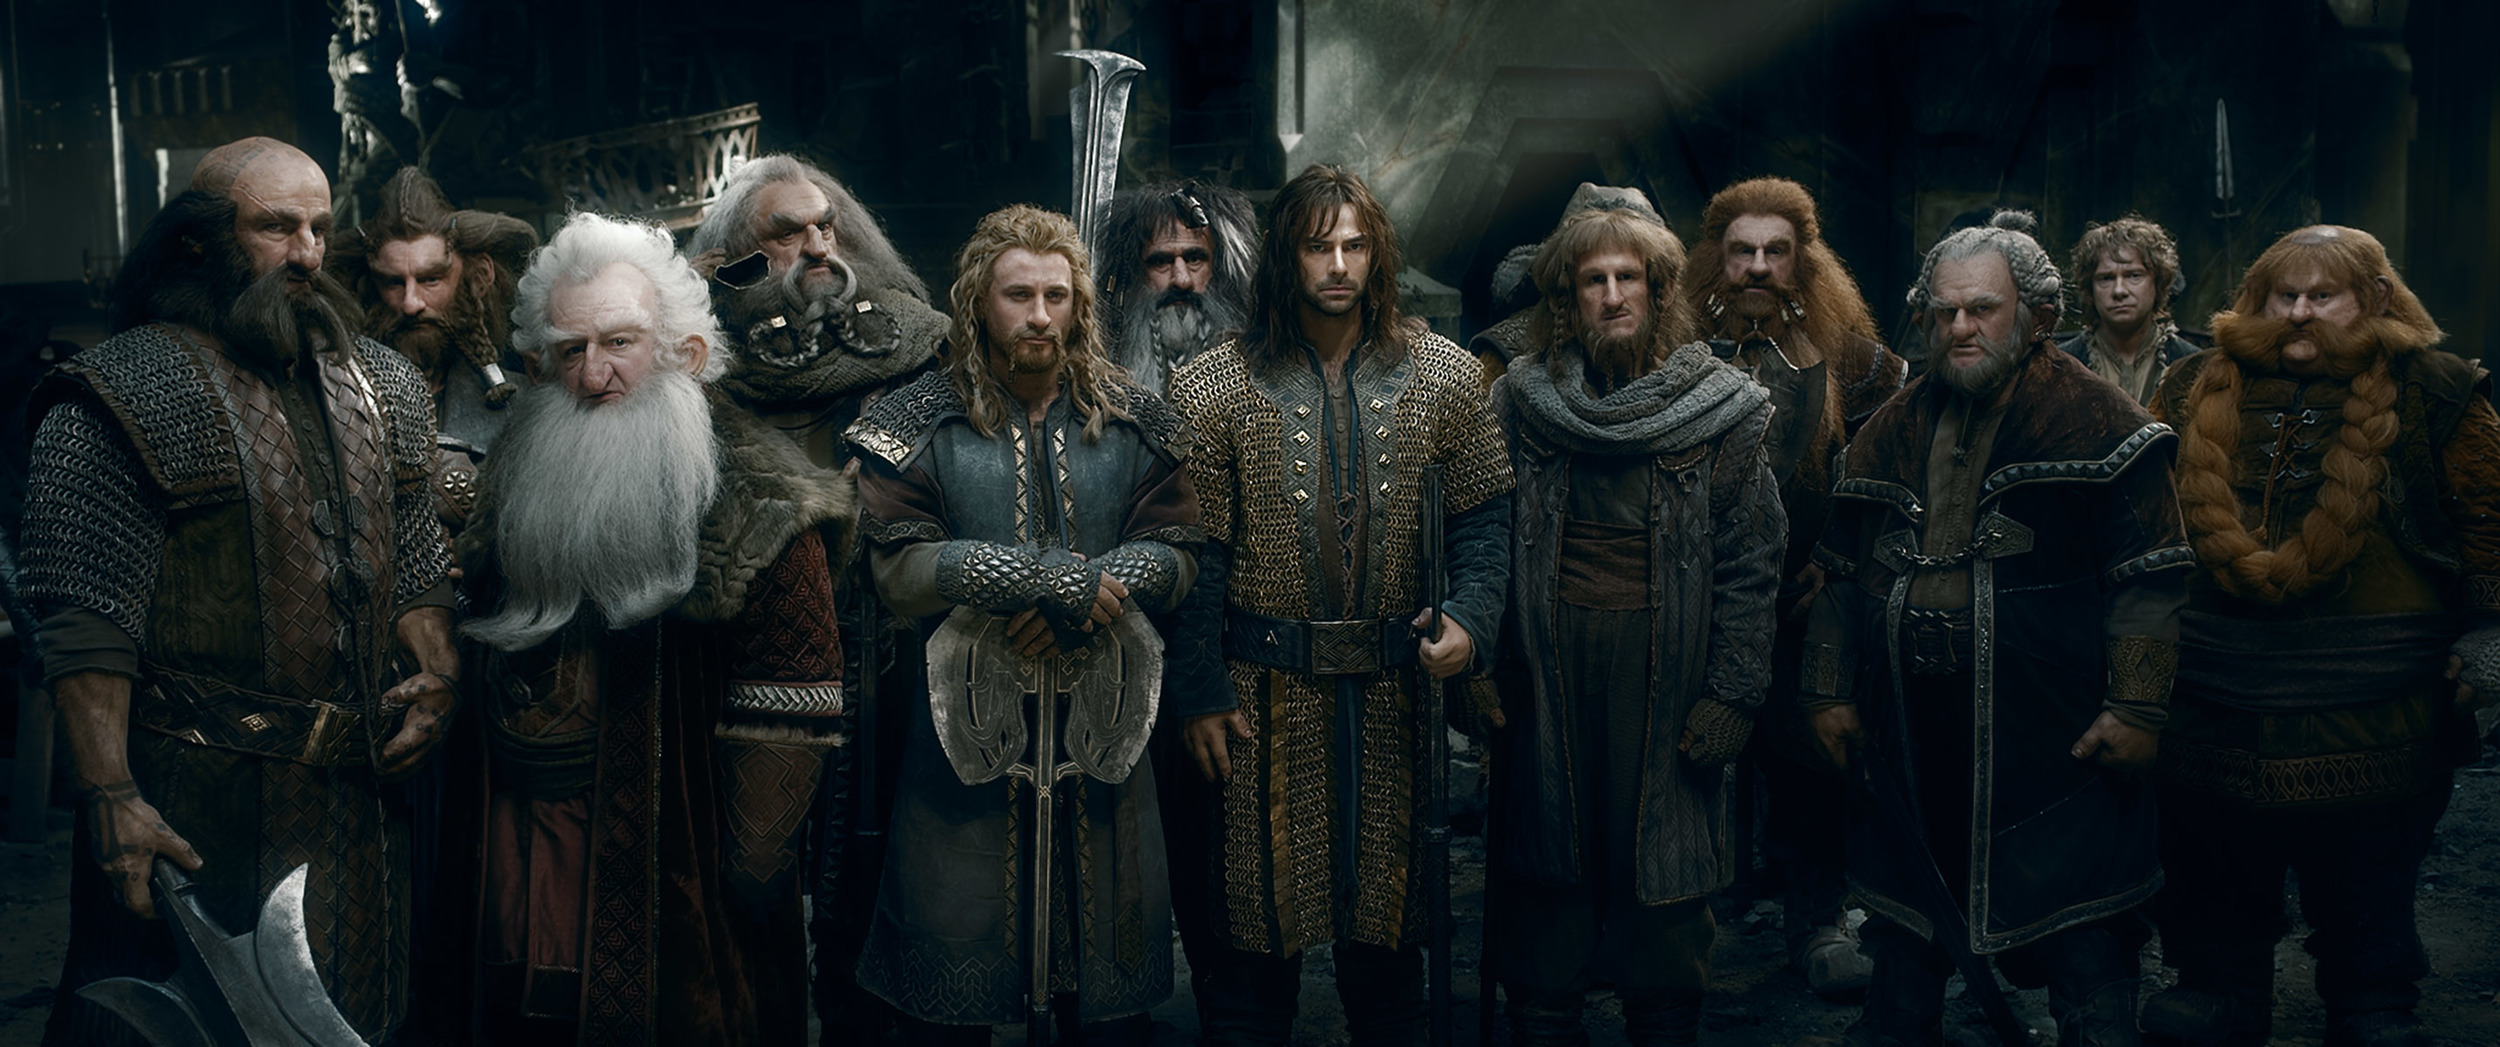 2-clips-from-the-hobbit-the-battle-of-the-five-armies-war1